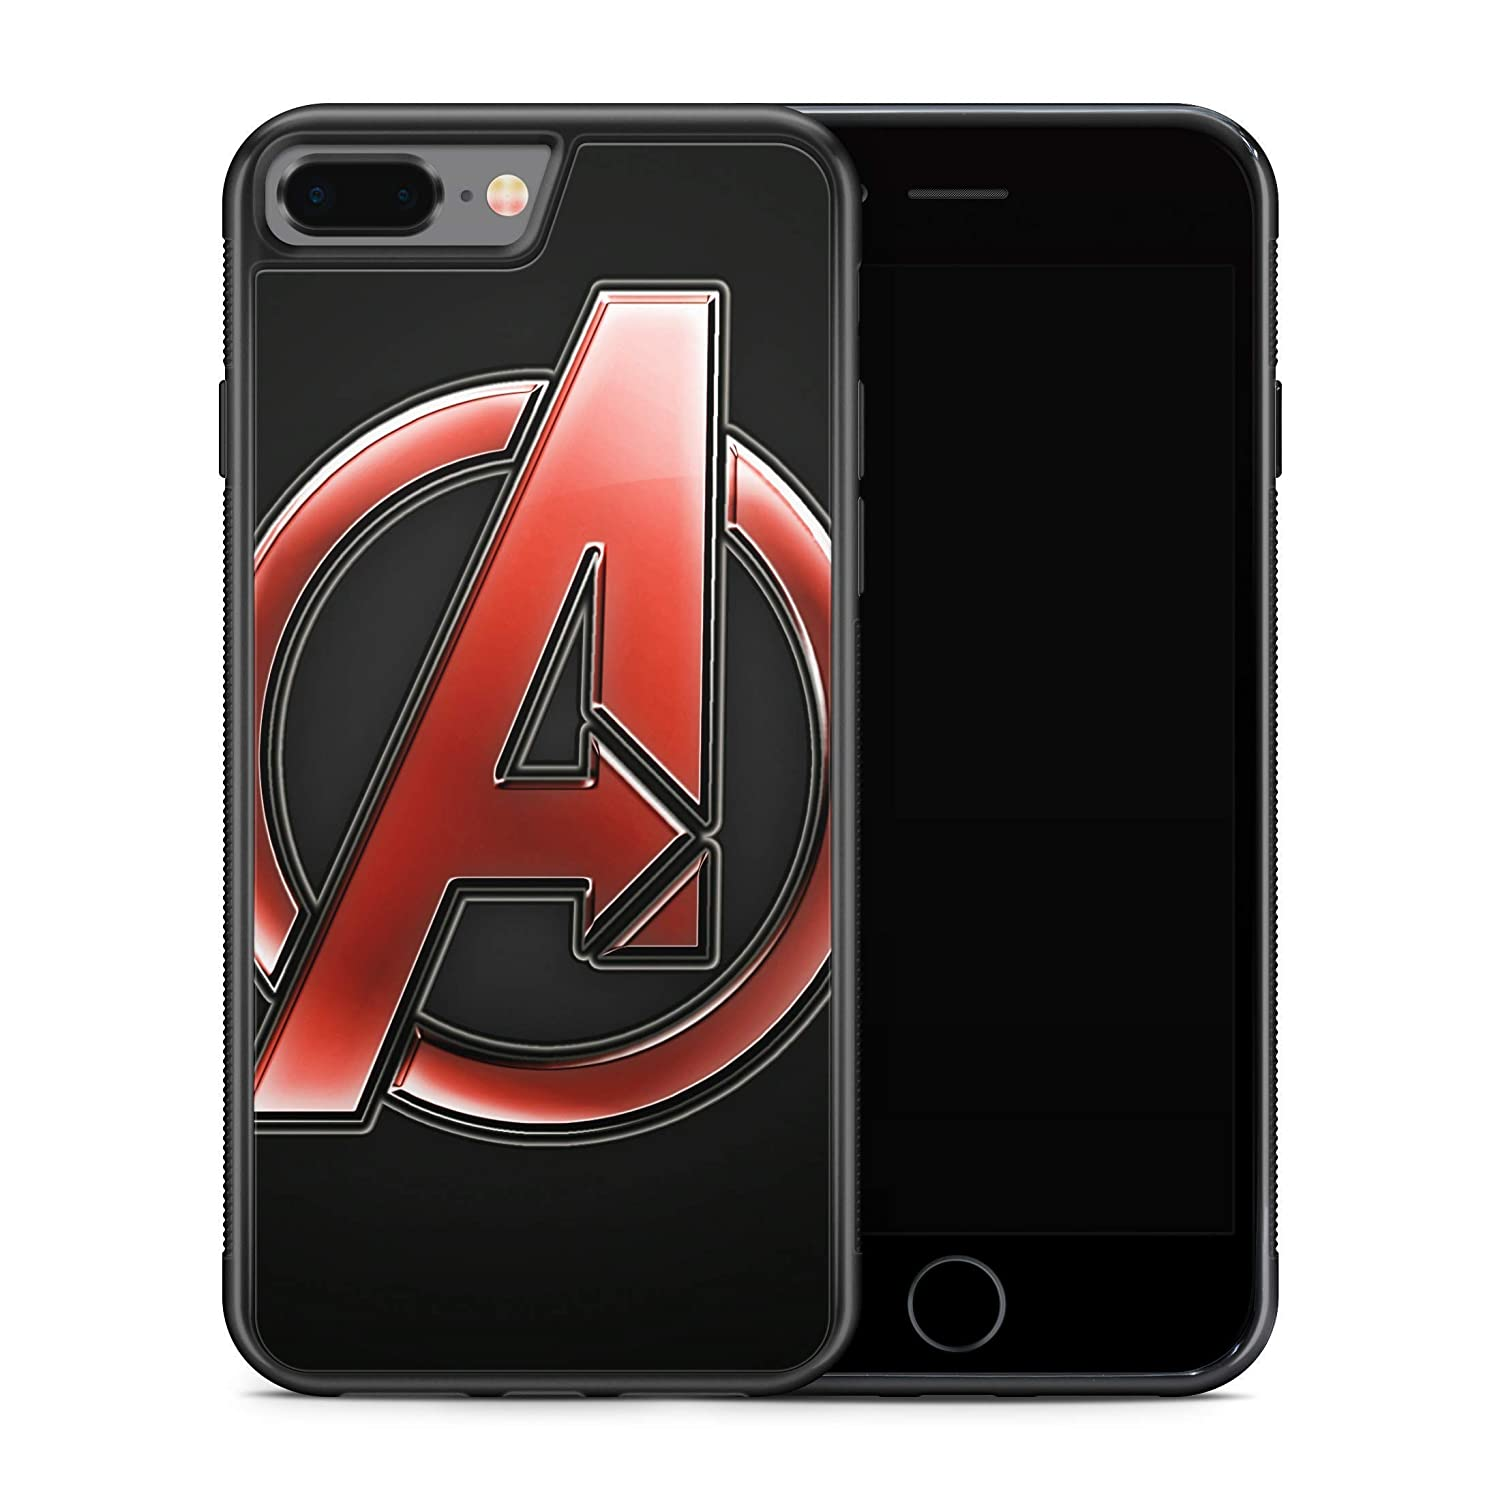 S9 Case Comics Superhero Phone Cover M194 Inspired by Avengers Logo Samsung Note s10 Plus 9 Case Galaxy S10 Plus 10e S8